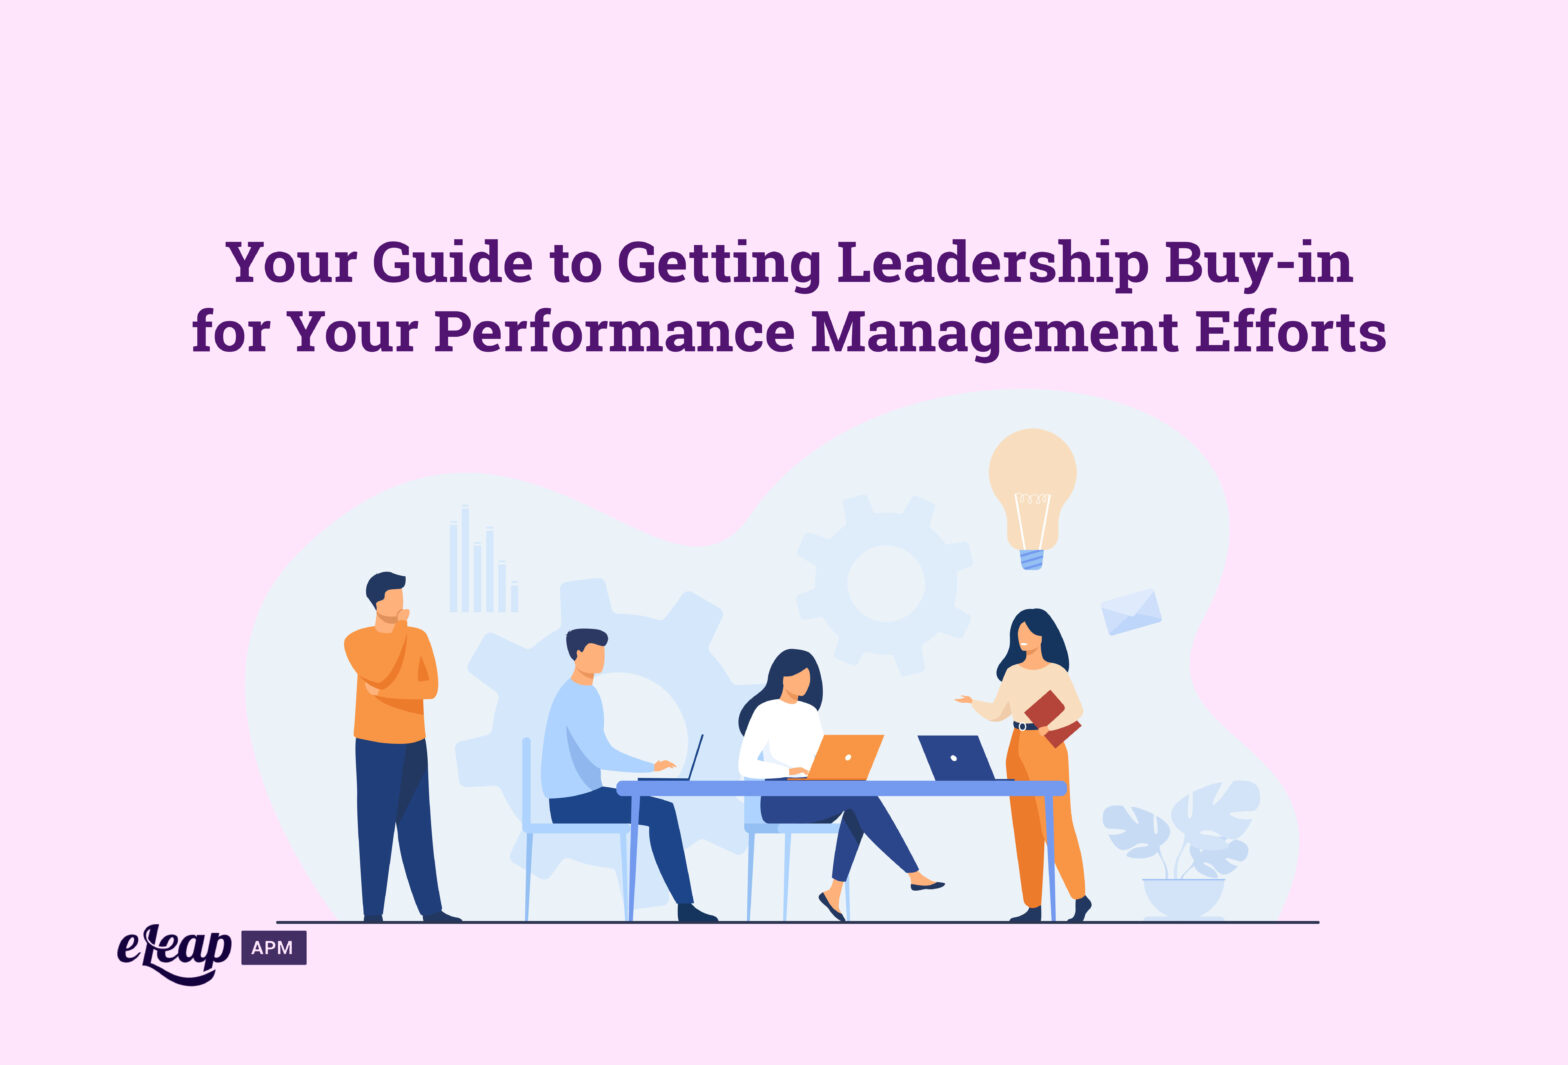 Your Guide to Getting Leadership Buy-in for Your Performance Management Efforts